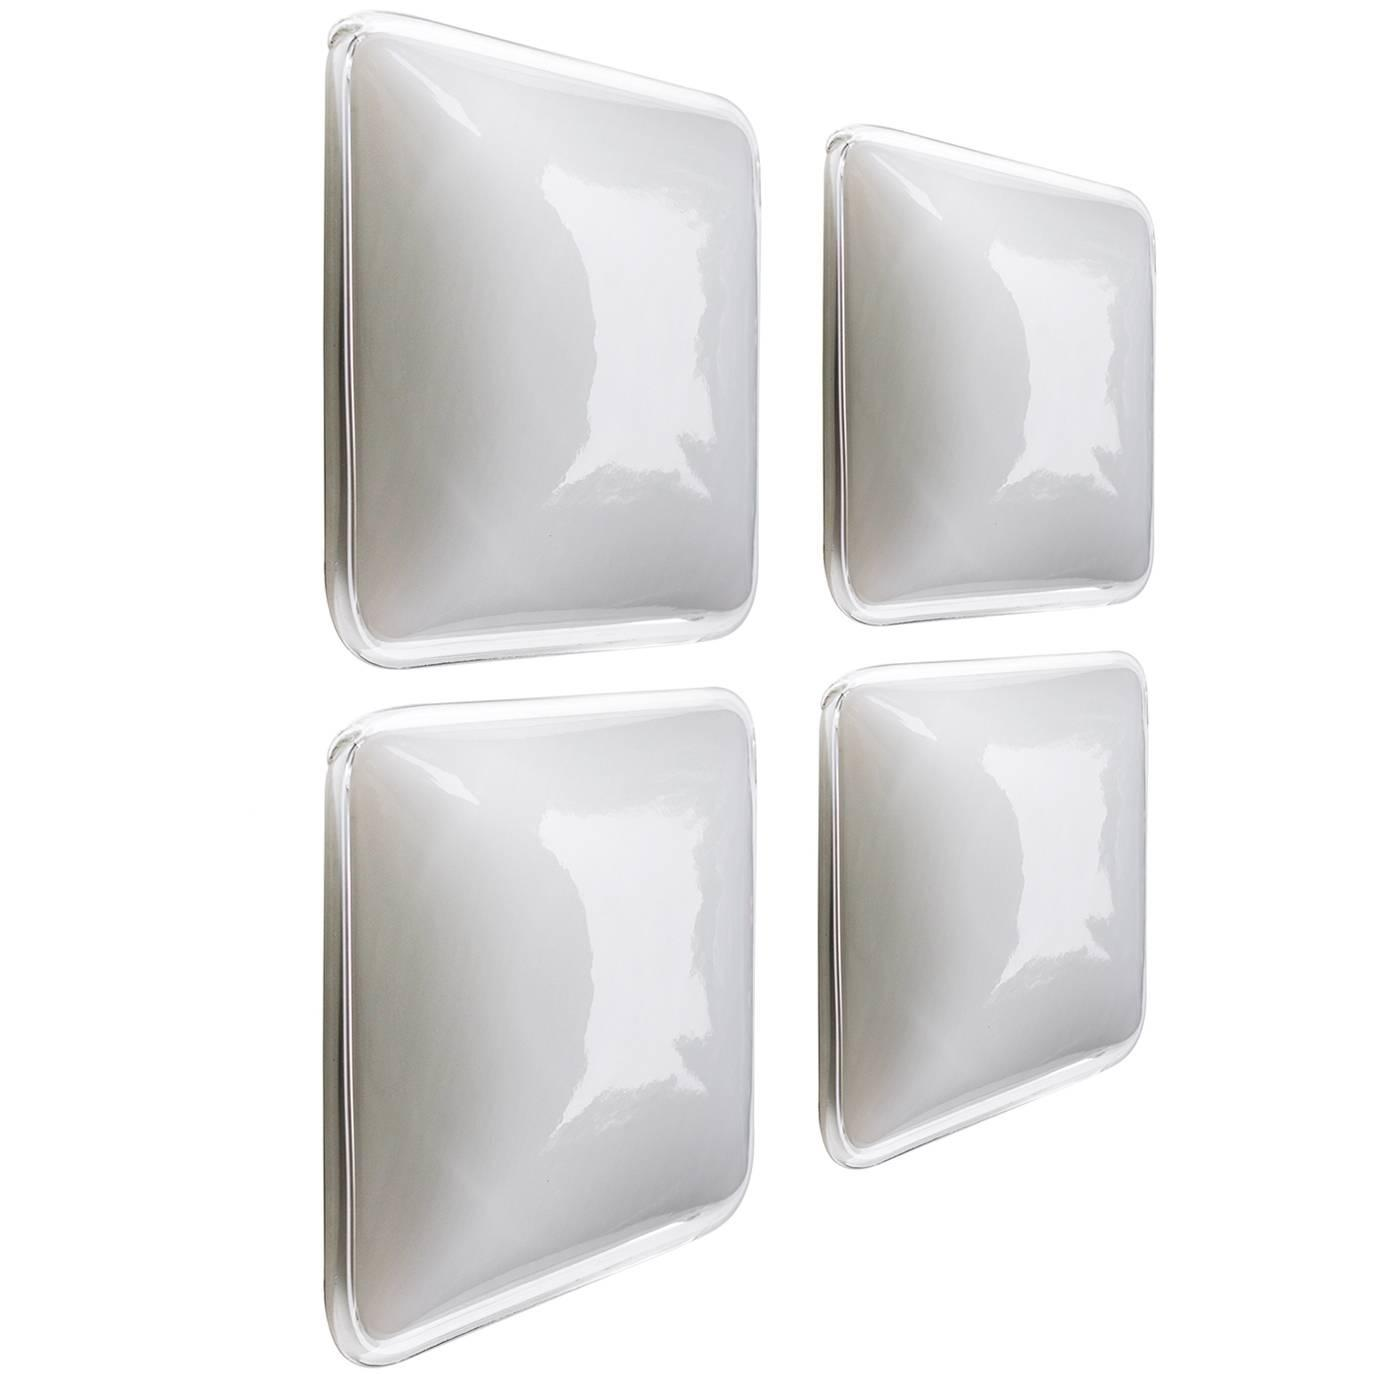 Set of Four Square Handblown Glass Wall Ceiling Lights Flush Mounts, Germany For Sale at 1stdibs